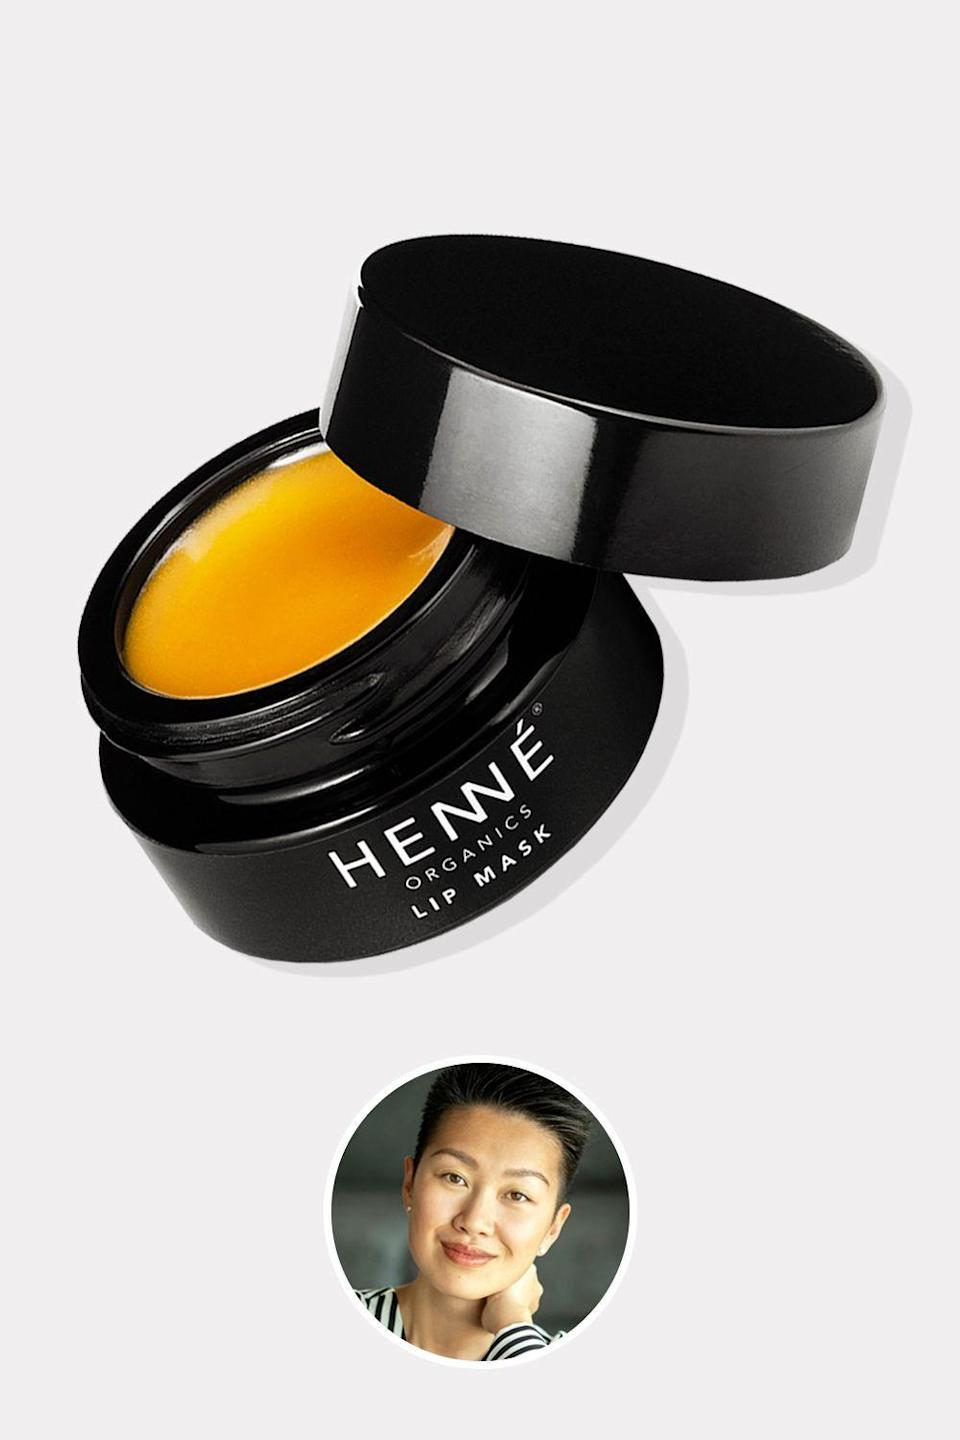 """<p><strong>Henne Organics</strong></p><p>henneorganics.com</p><p><strong>$37.00</strong></p><p><a href=""""https://henneorganics.com/lip-mask"""" rel=""""nofollow noopener"""" target=""""_blank"""" data-ylk=""""slk:Shop Now"""" class=""""link rapid-noclick-resp"""">Shop Now</a></p><p>Henne founder Laura Xiao craves a streamlined life—and that includes her beauty regimen. This idea inspired her clean line, which features myriad lip products from a serum to scrubs to tints. But her mask is a revelation: It coddles delicate lip skin with ingredients like sea buckthorn and evening primrose. And the scent—<em>the scent</em>—is incredible. It's a delicate blend of citrus and vanilla that's universally appealing.</p>"""